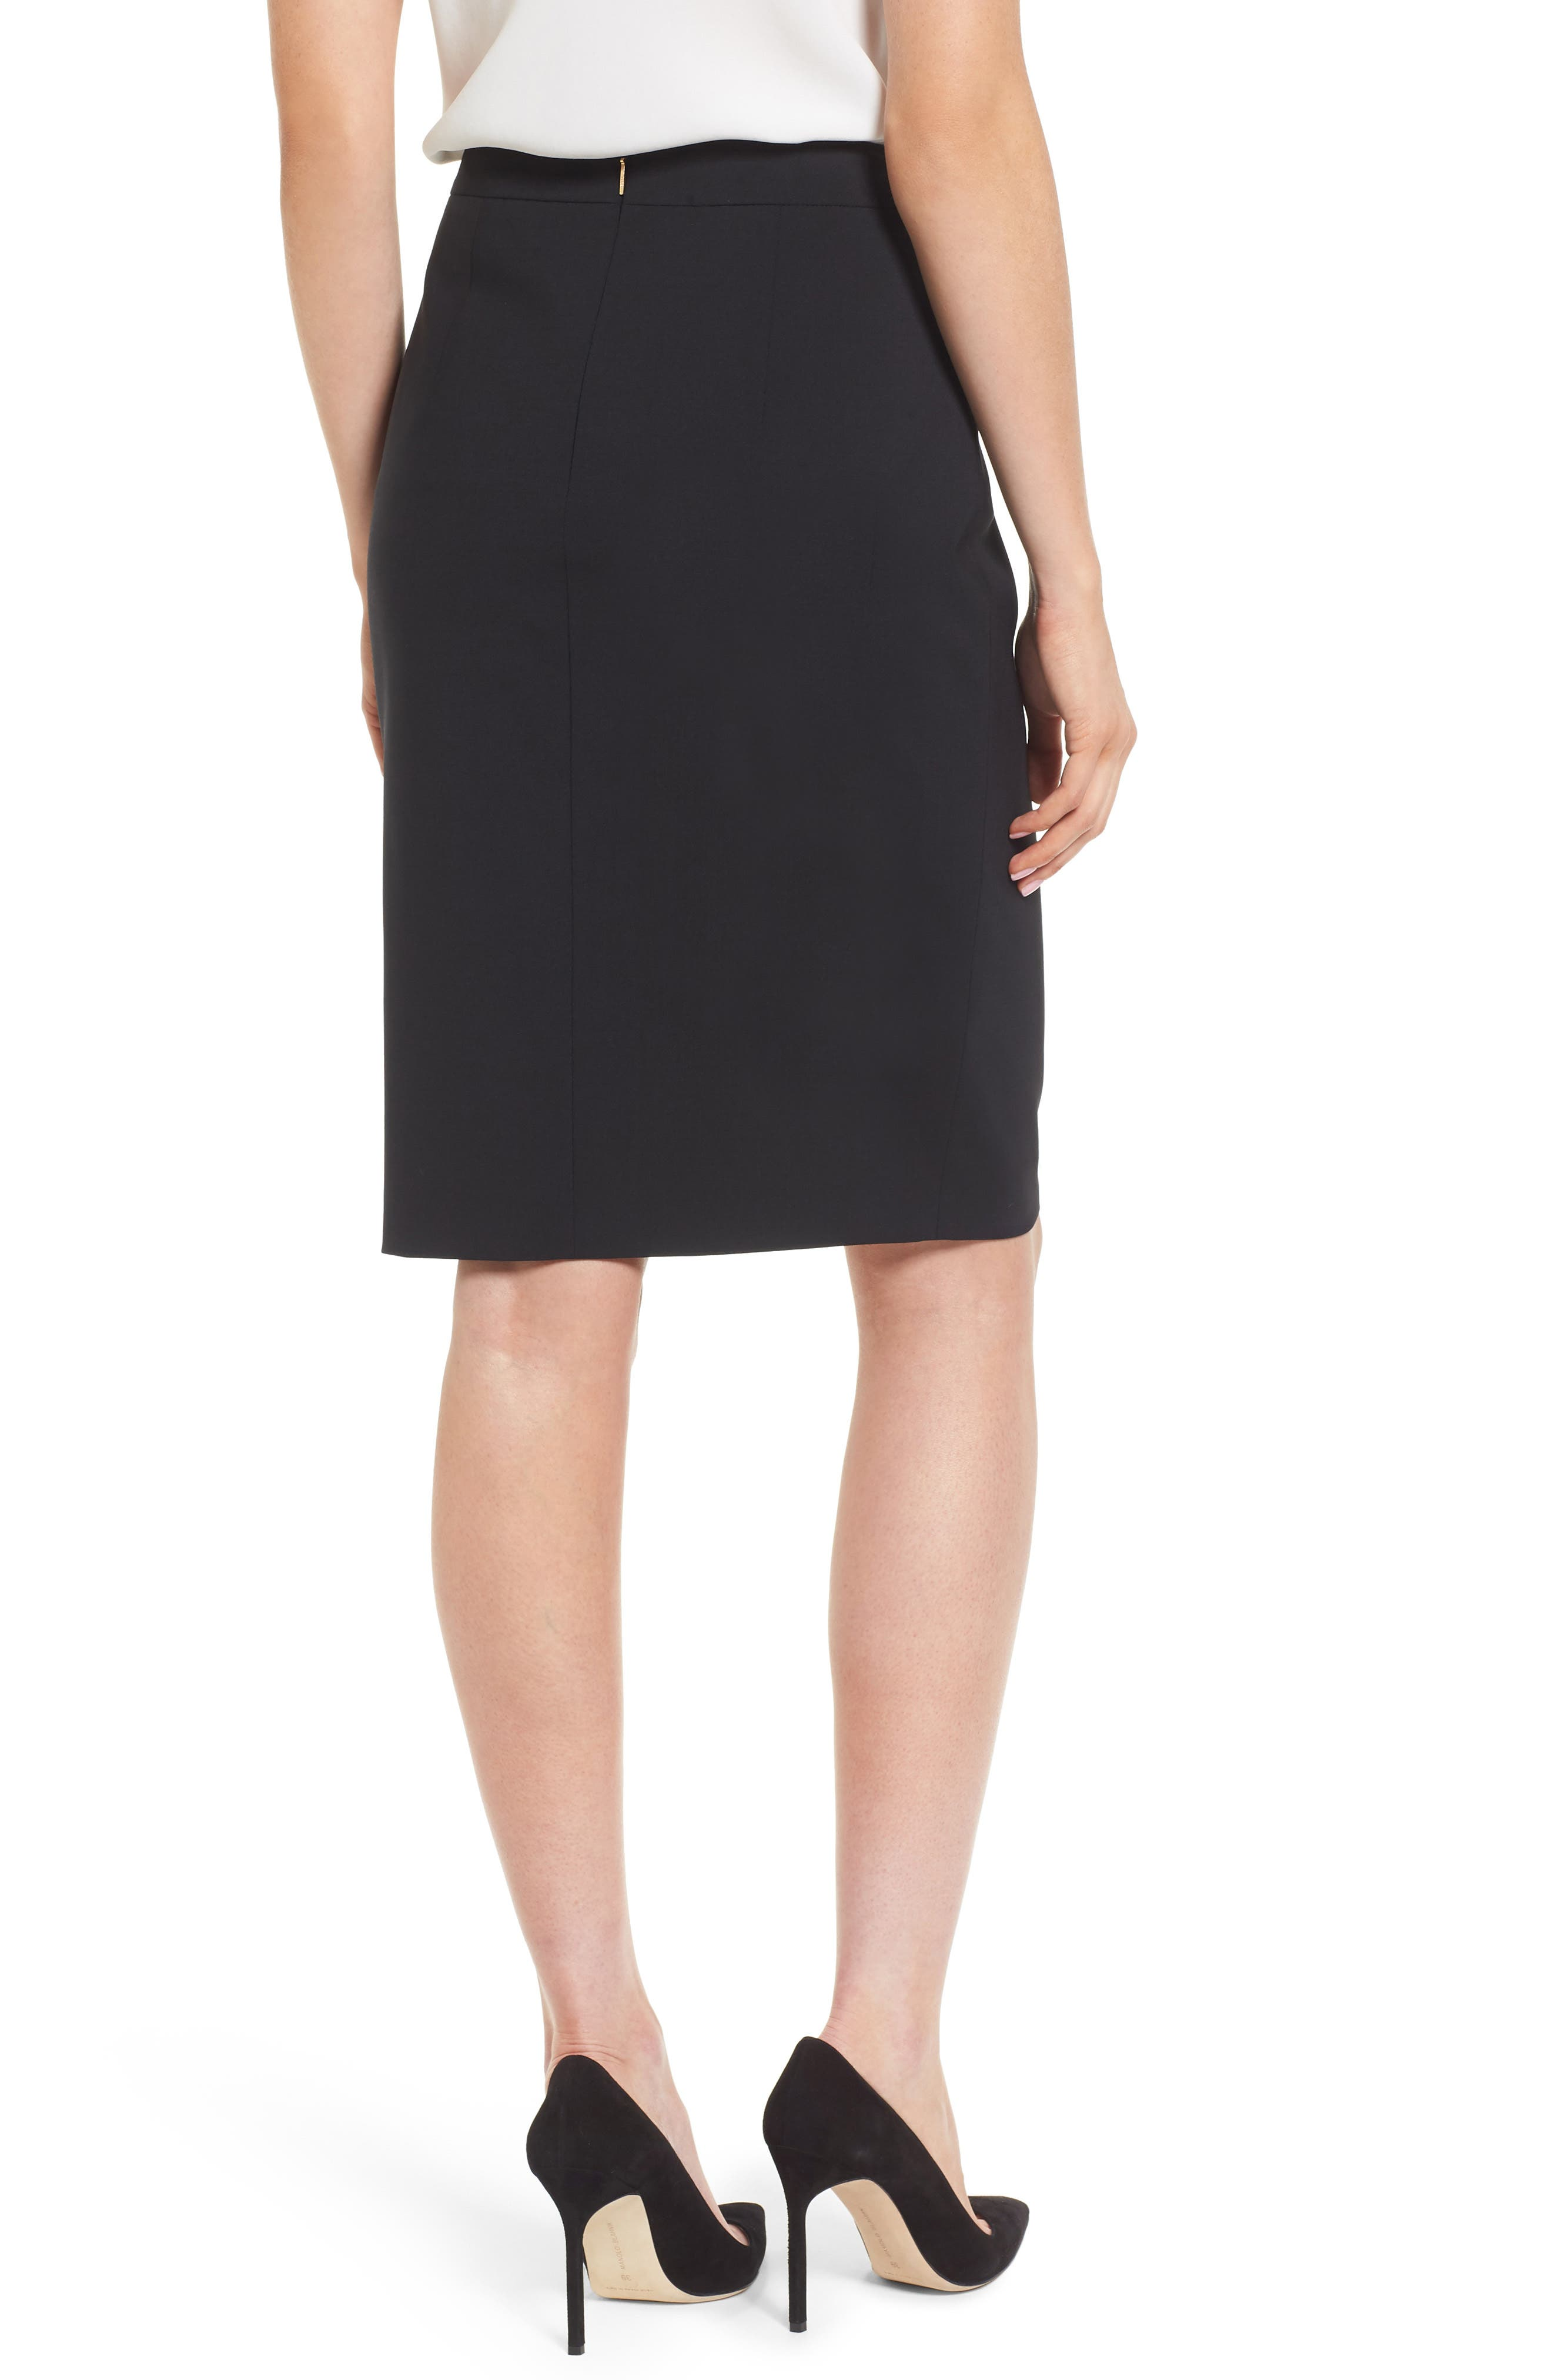 Volania Stretch Wool Pencil Skirt,                             Alternate thumbnail 2, color,                             Black